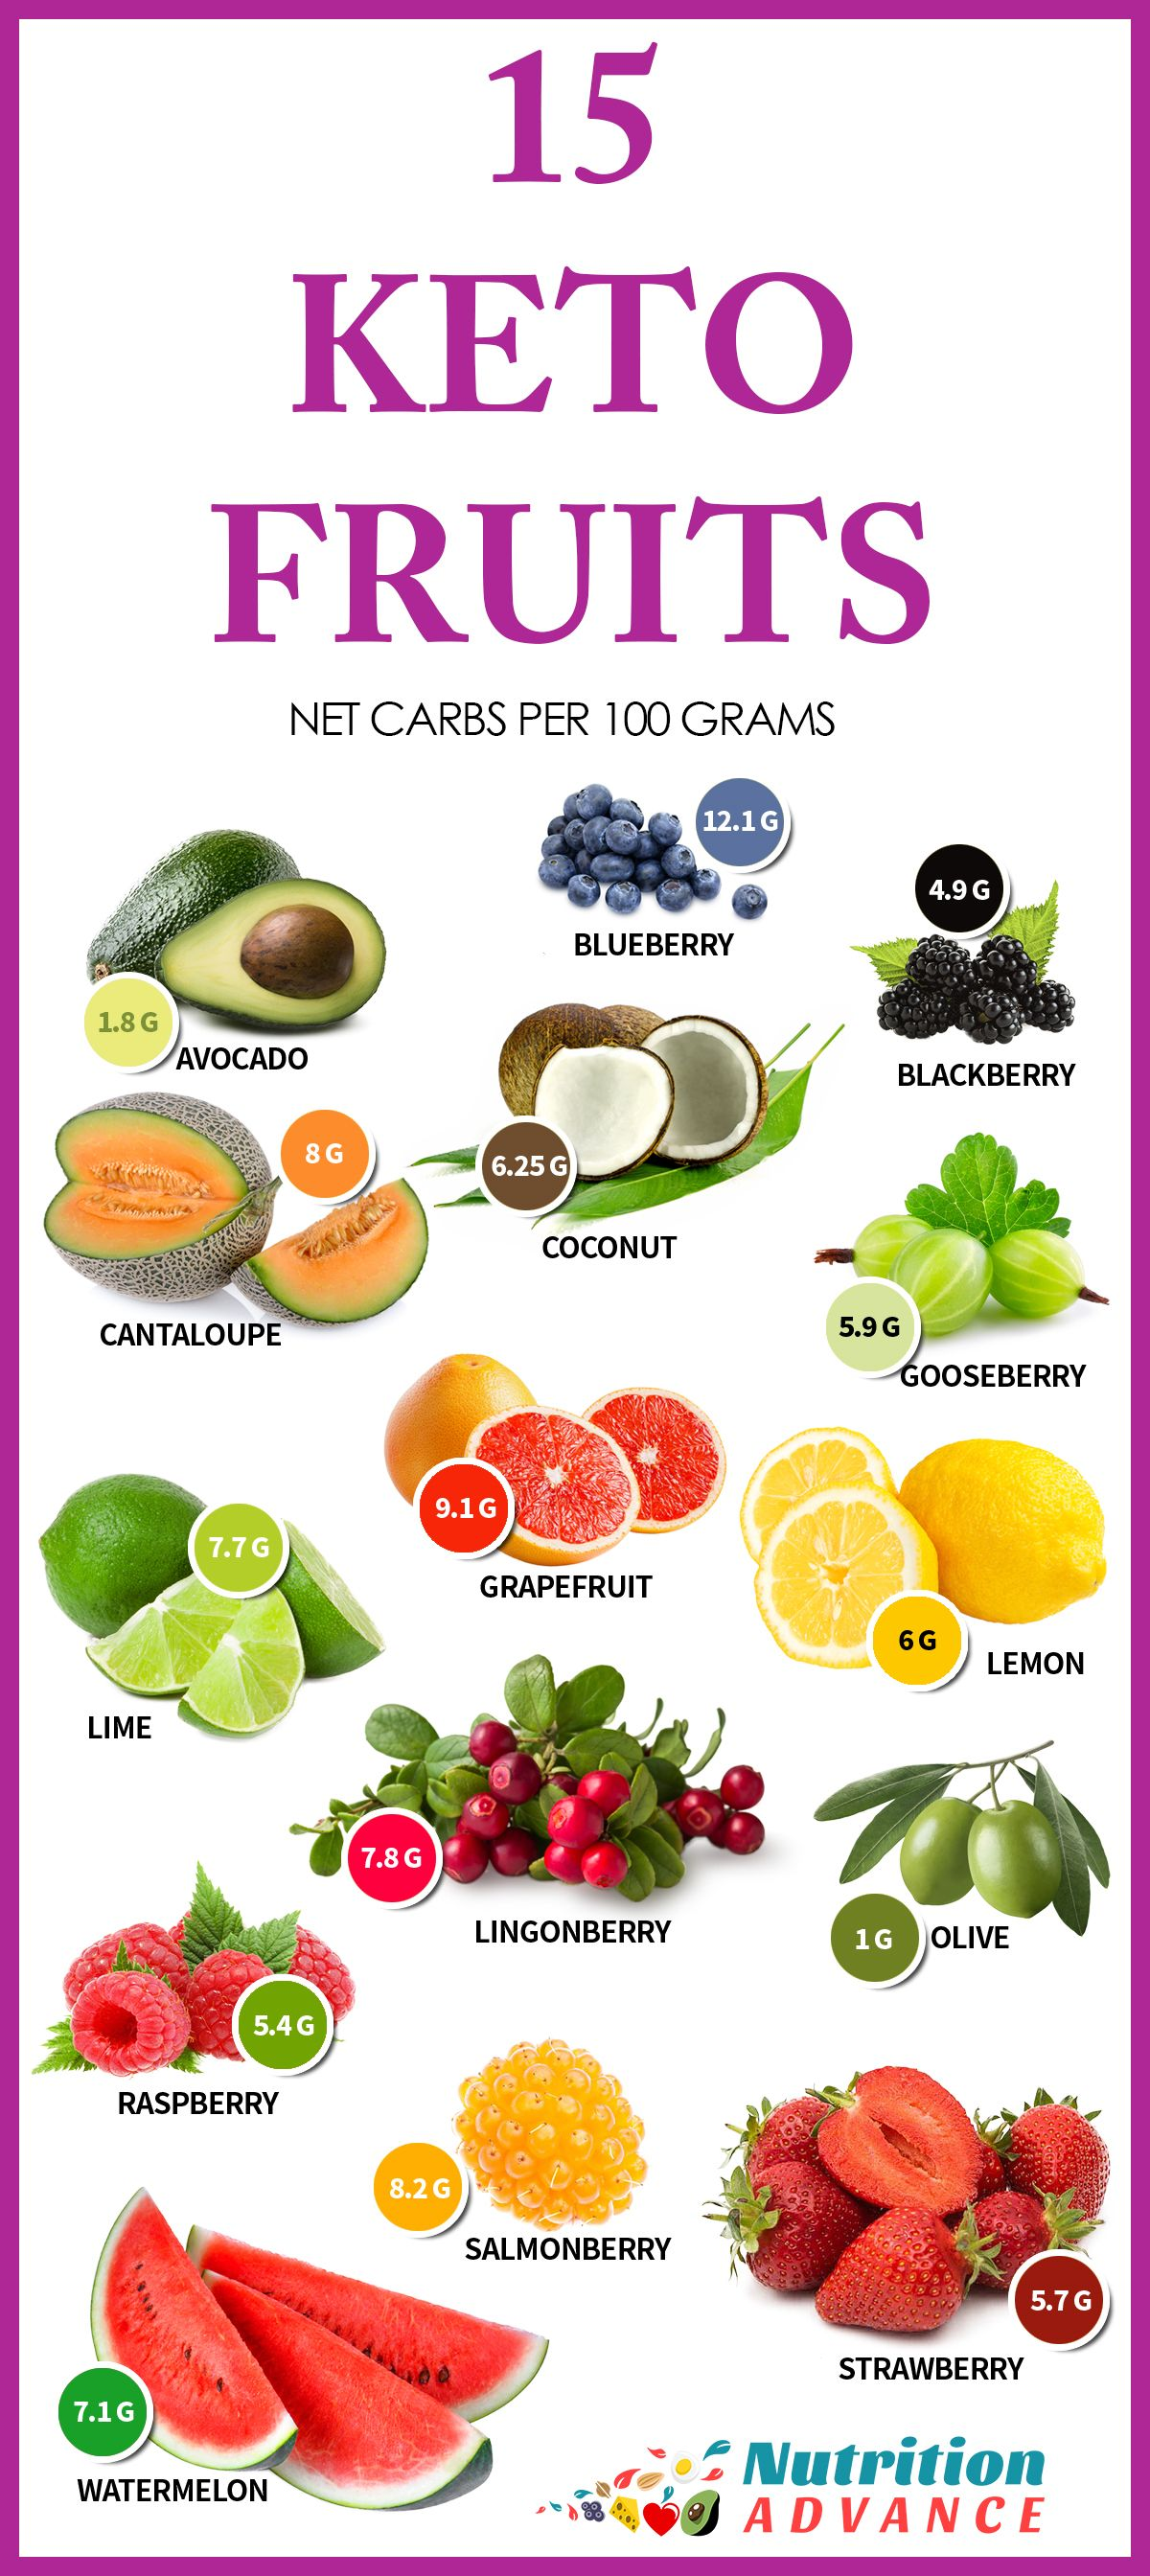 7 of the Best Fruits for Diabetics (Based On Sugar and Nutrients)